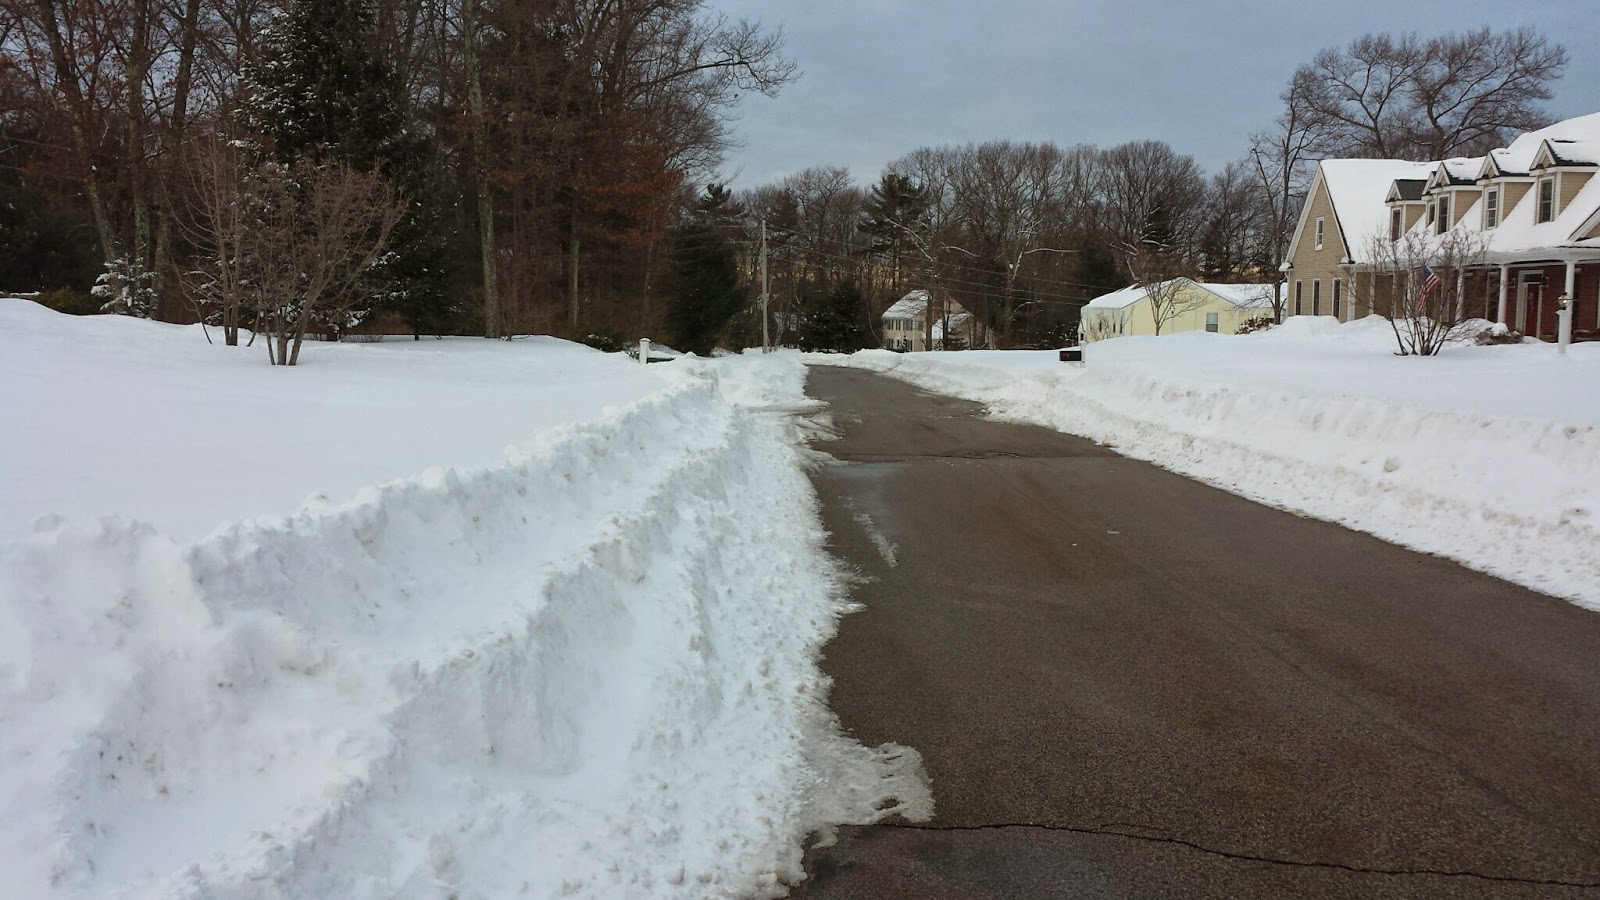 Look what a little sun can do. Tuesday morning the street was completely white. By late afternoon, it lookedlike this